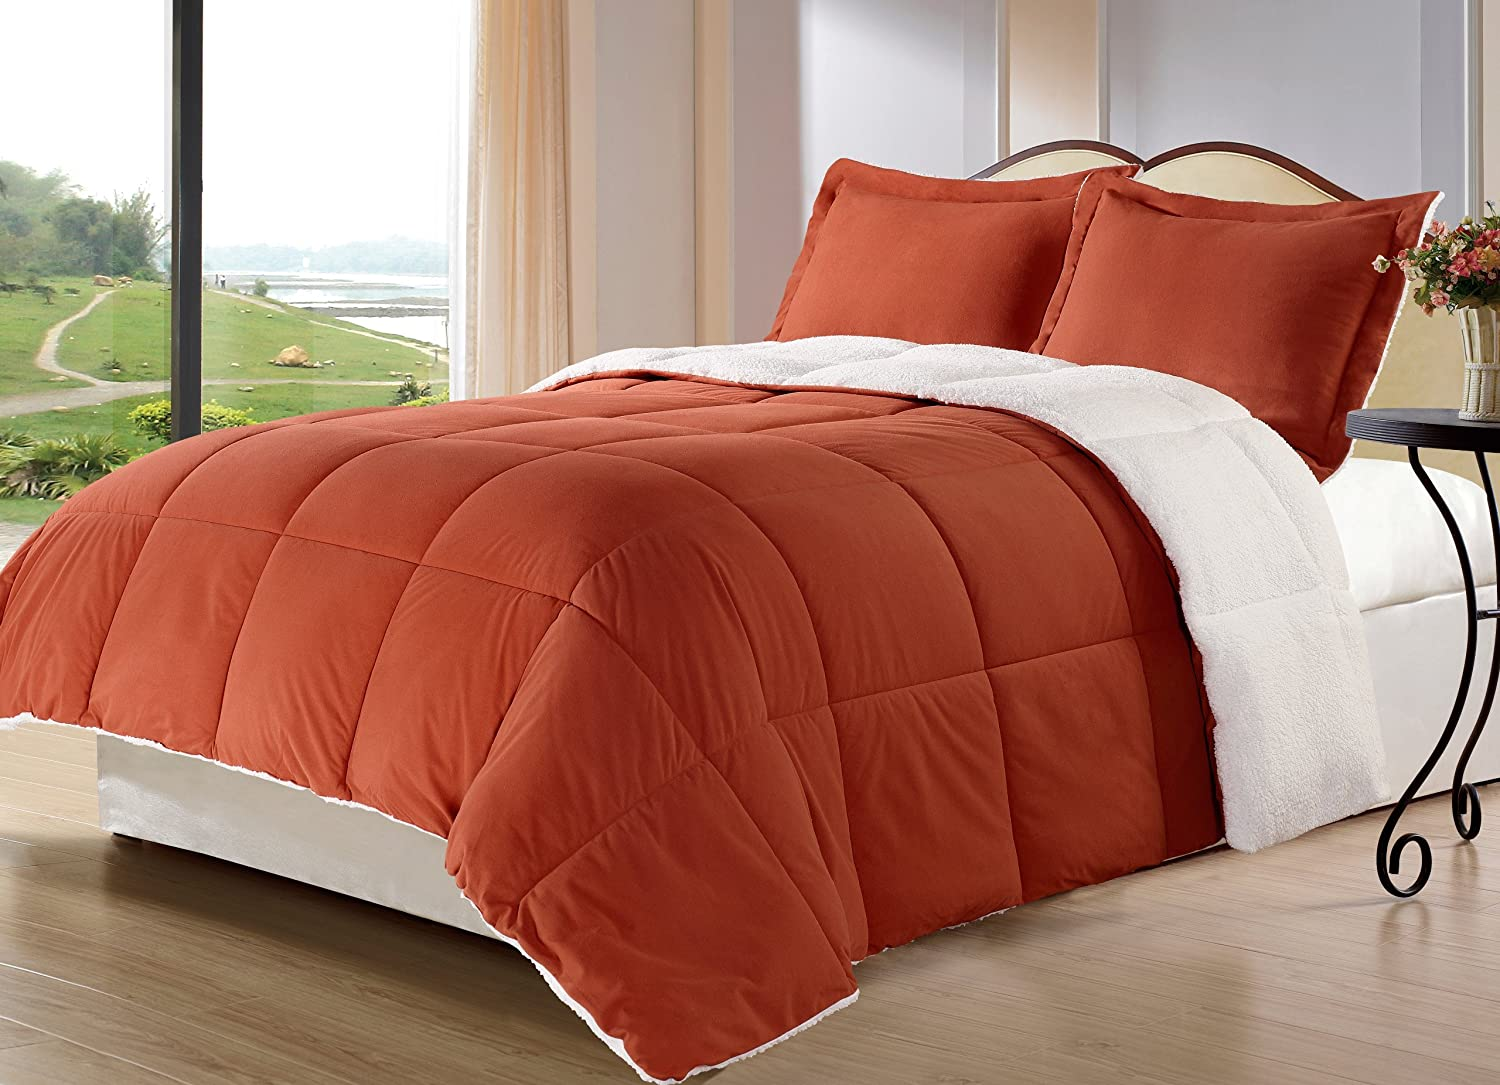 Bedding Comforters Clearance Ease Bedding With Style